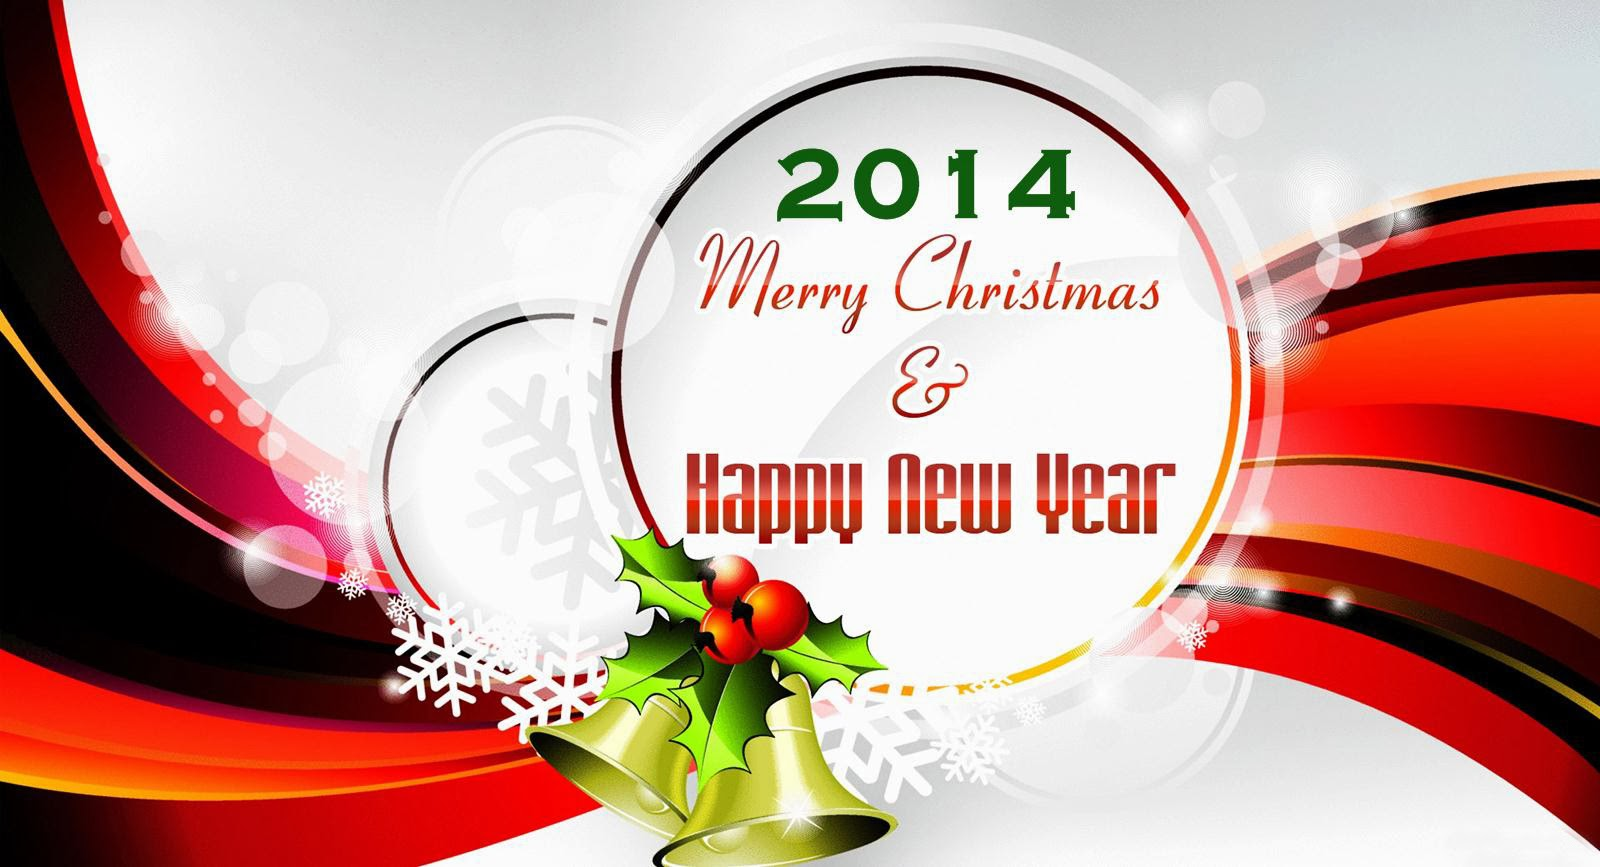 Merry Christmas Wallpapers 2014